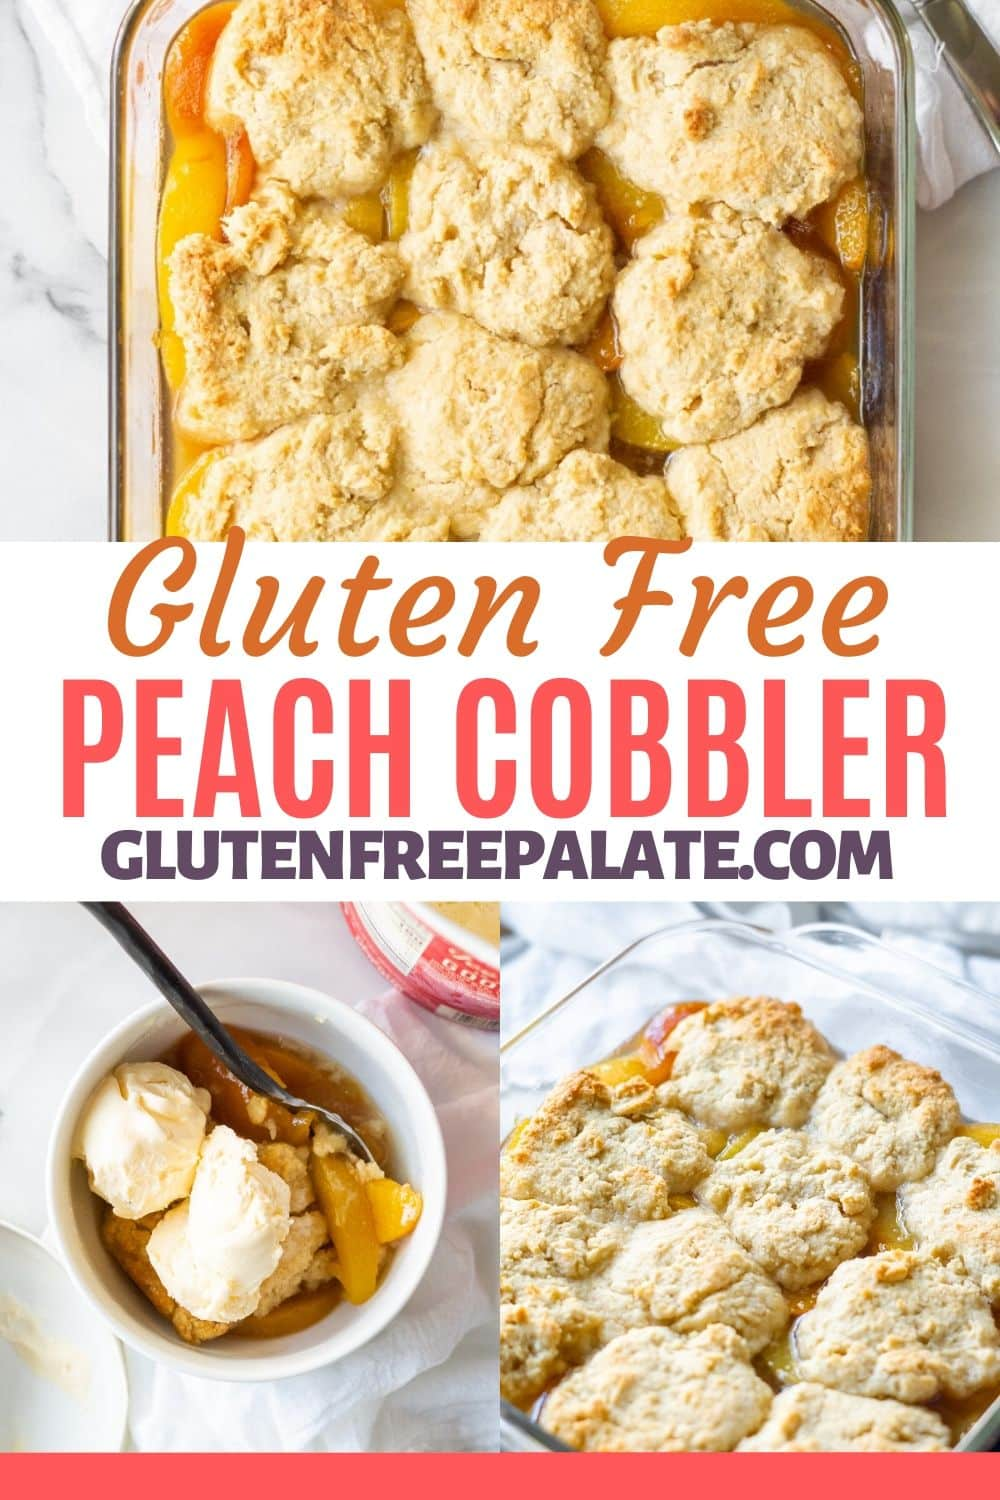 peach cobbler pinterest pin with images of peach cobbler